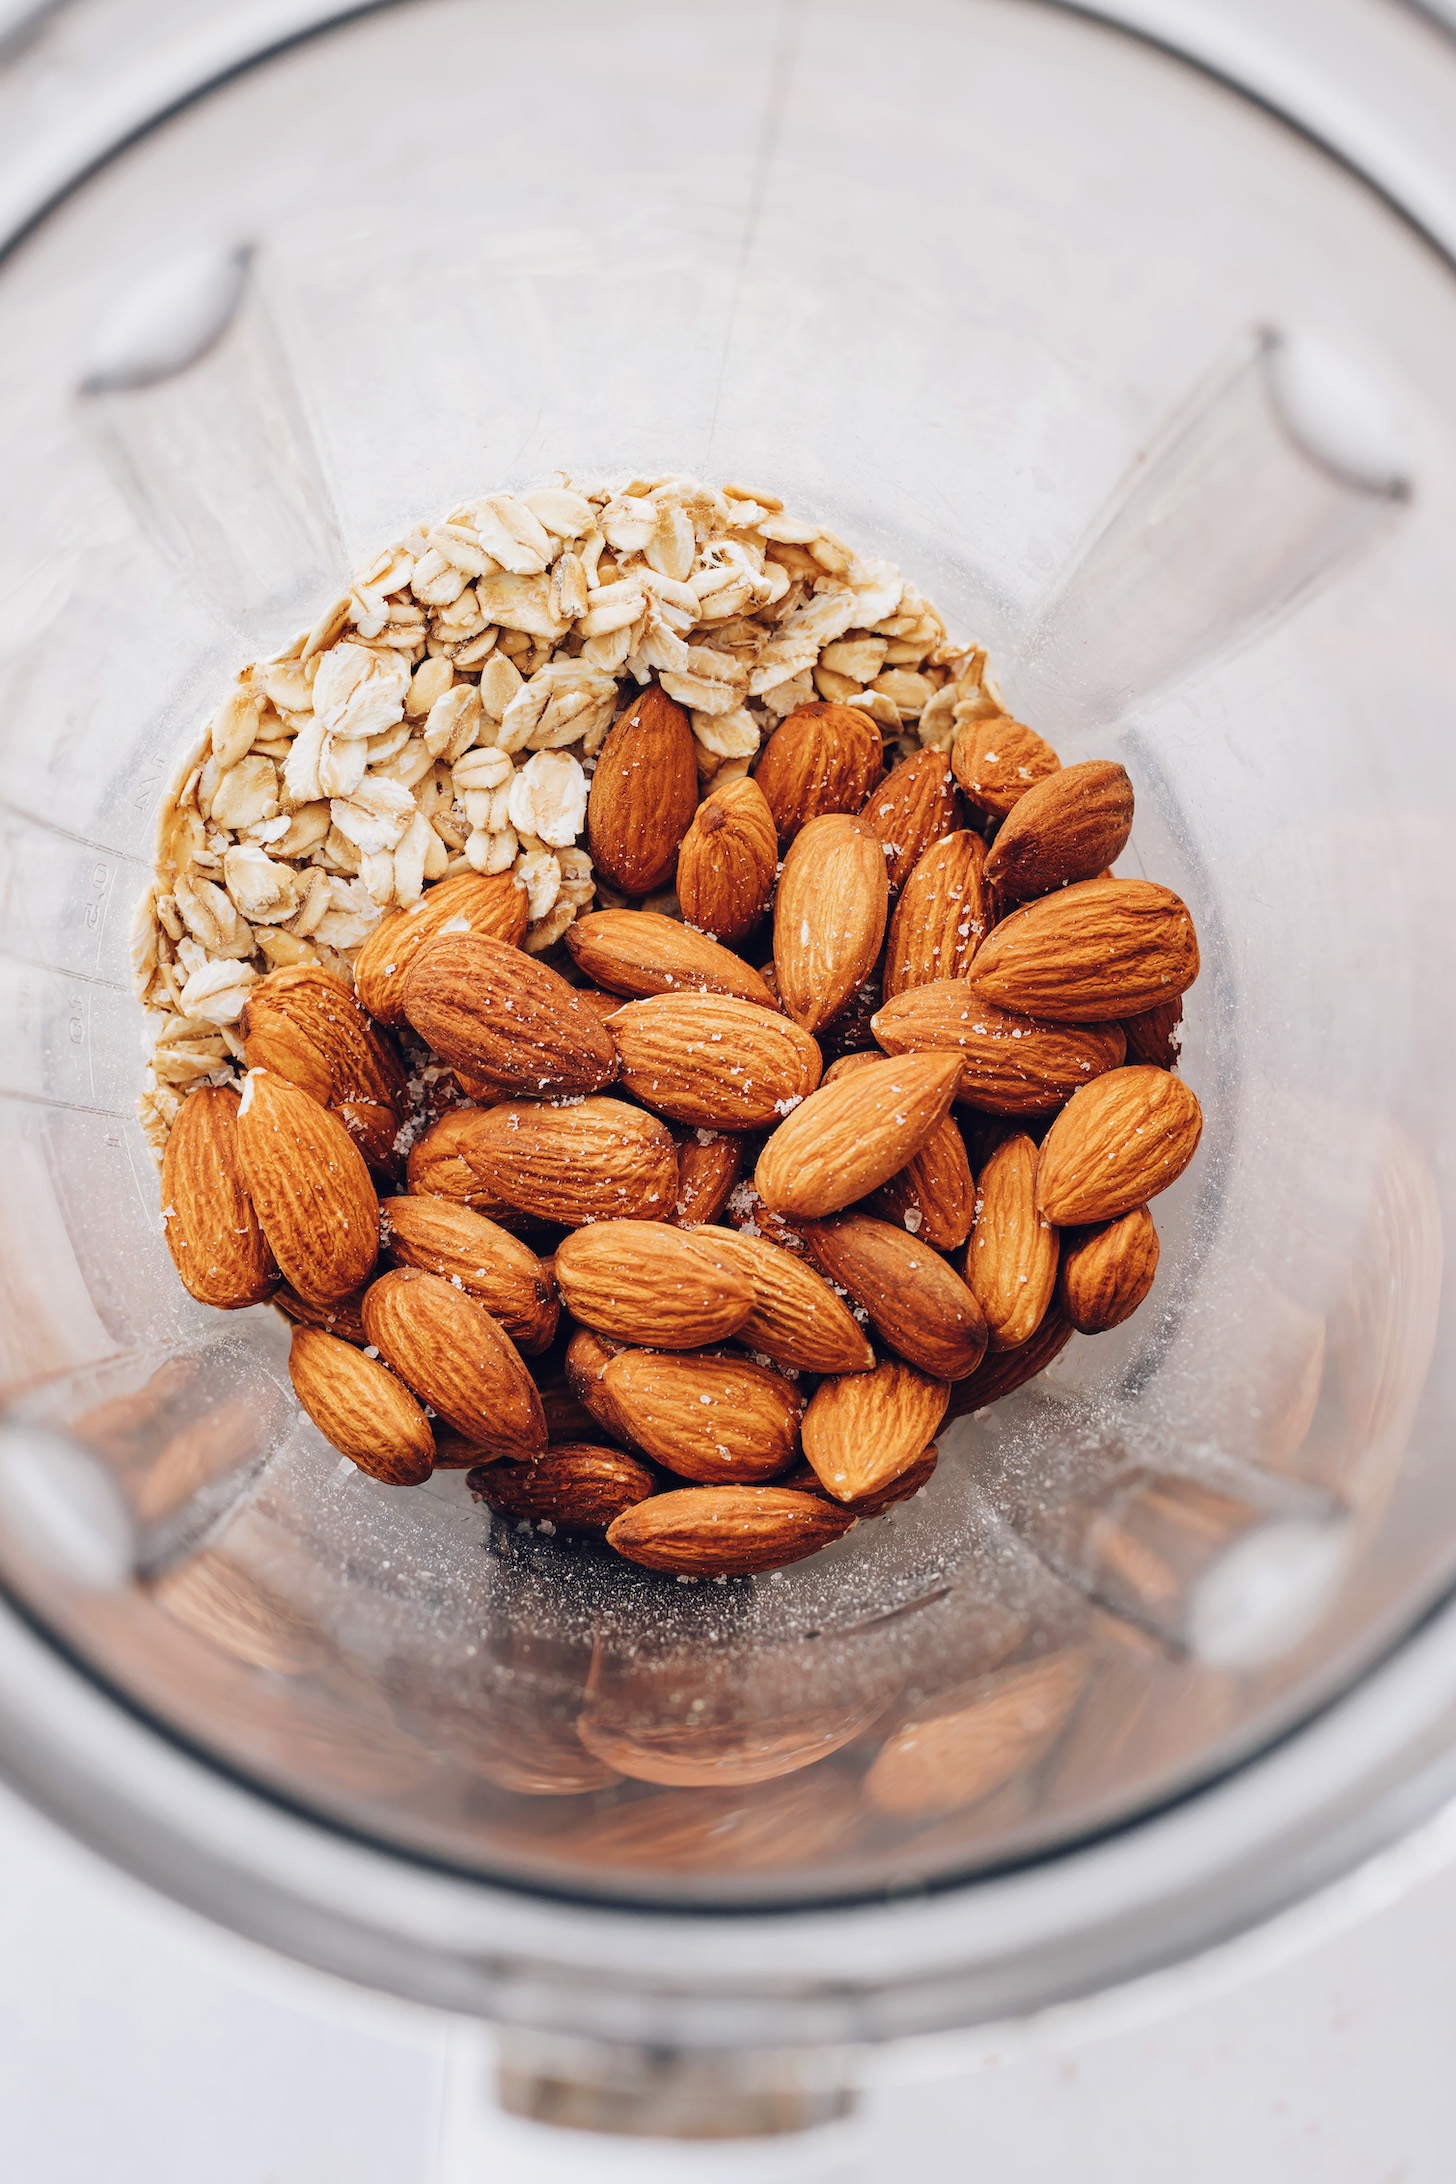 Oats, almonds, and sea salt in a blender